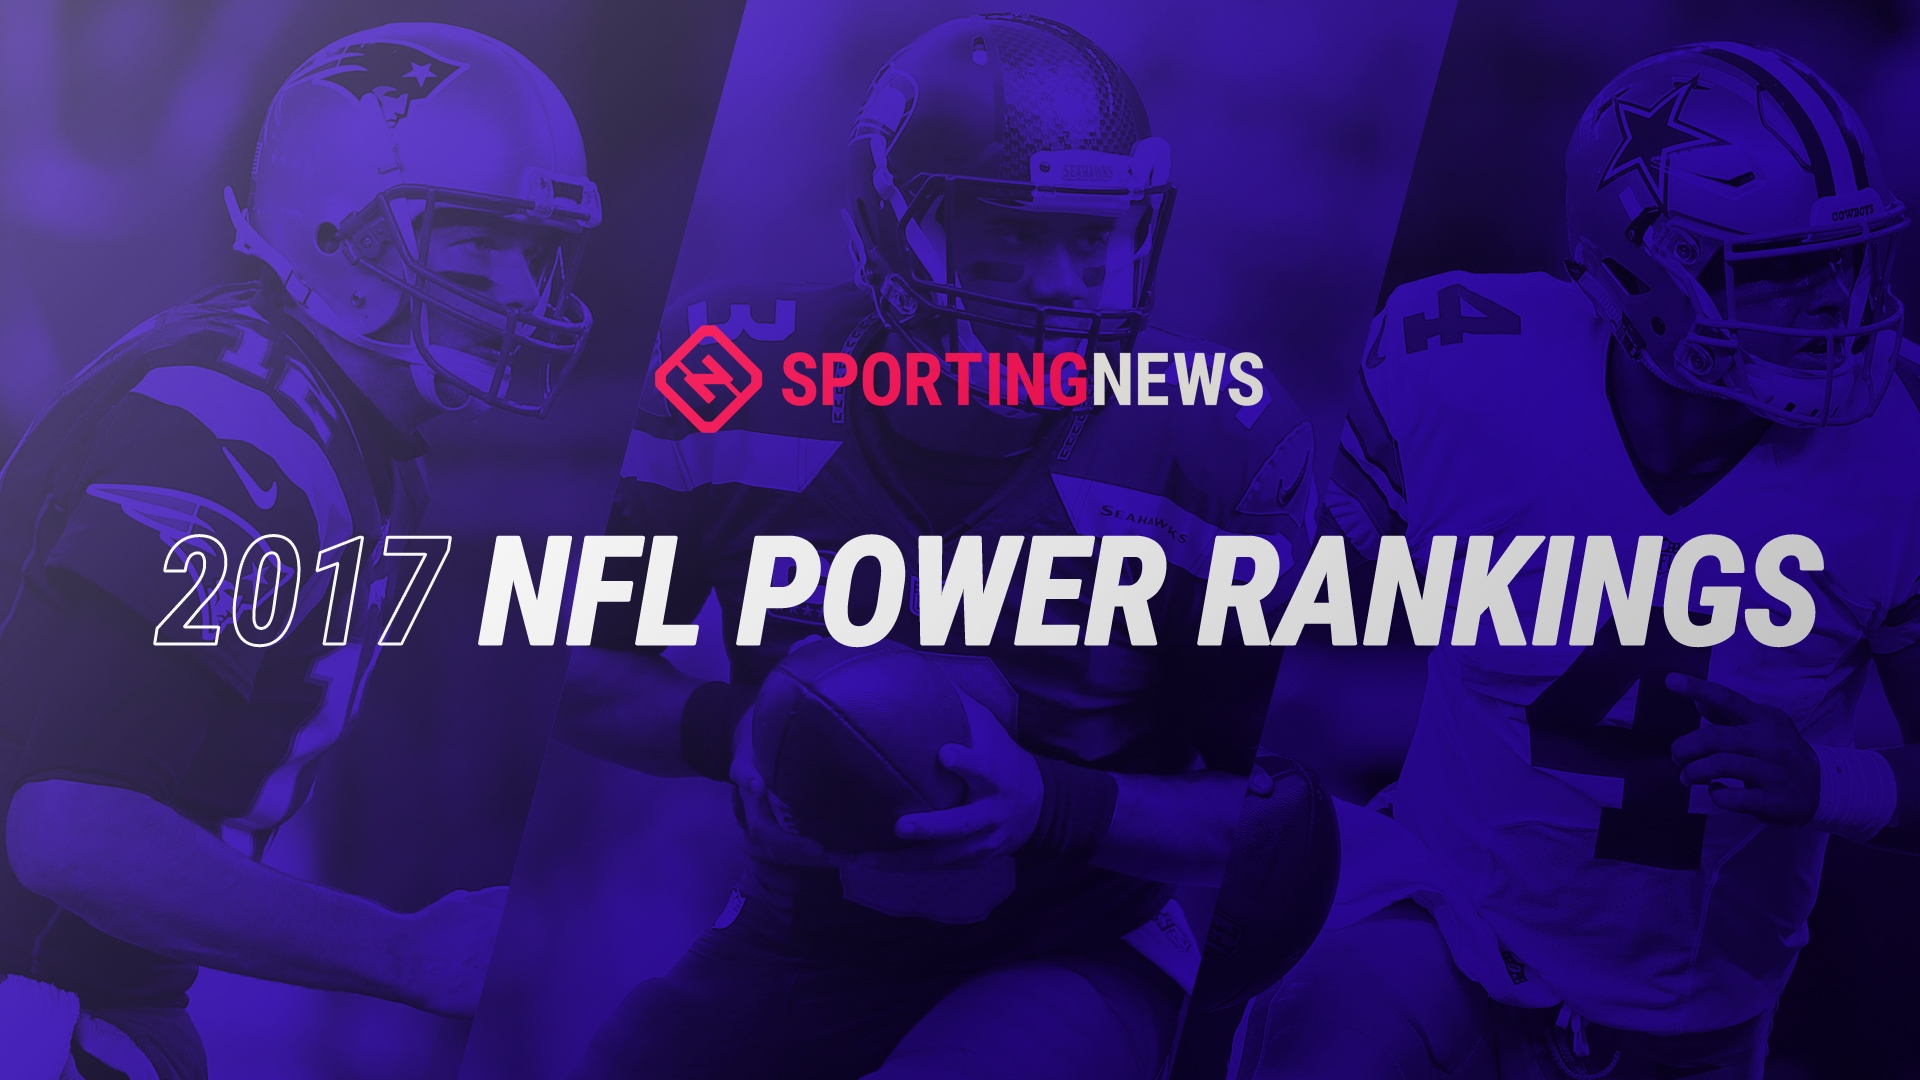 Nfl-power-rankings-073117-ftr_985s5fhhmft814vzlsvmy2bmk